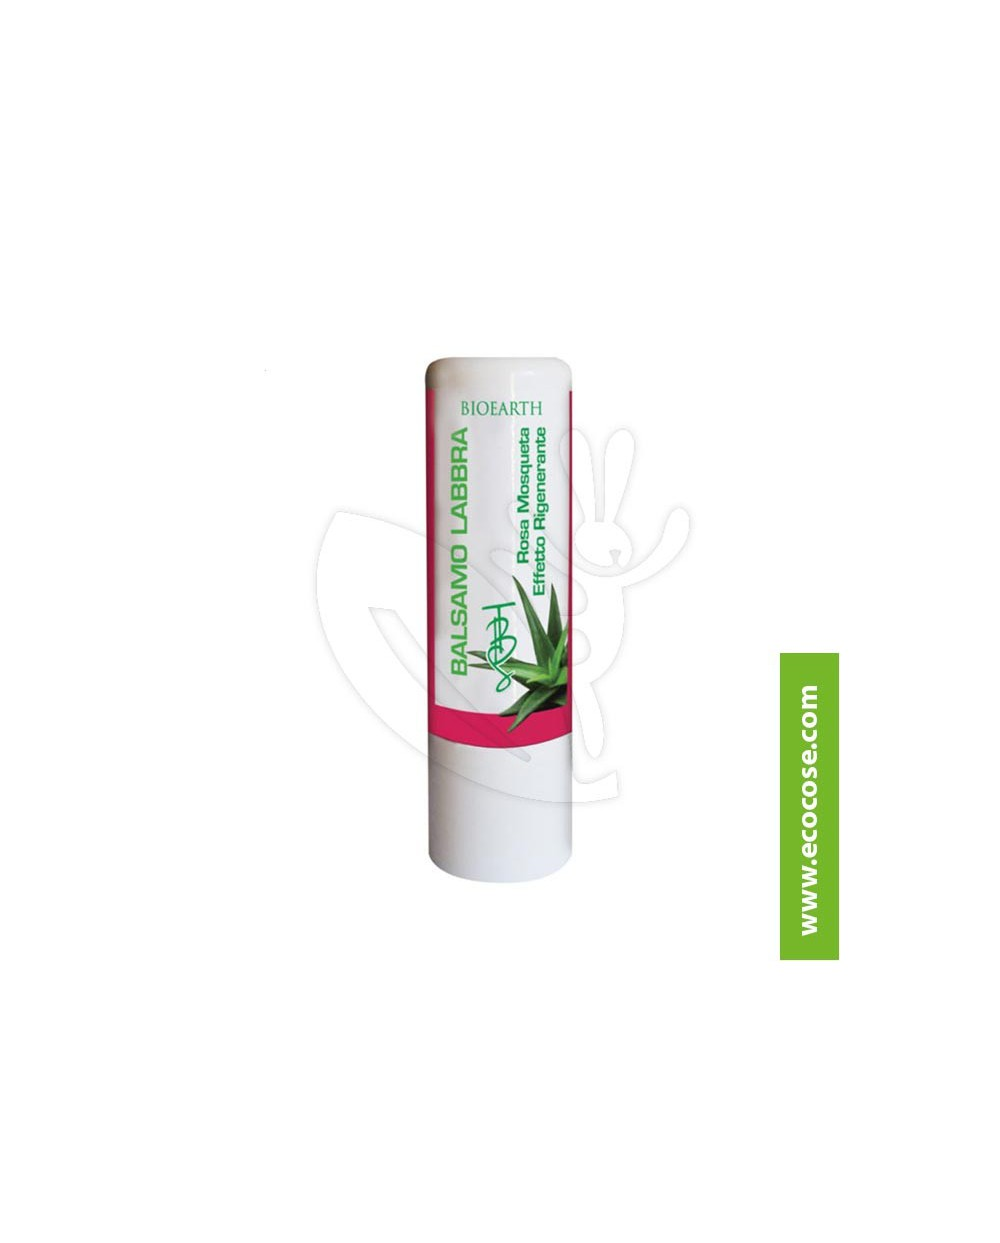 Bioearth - The Beauty Seed Lips - Balsamo Labbra Rosa Mosqueta e Aloe